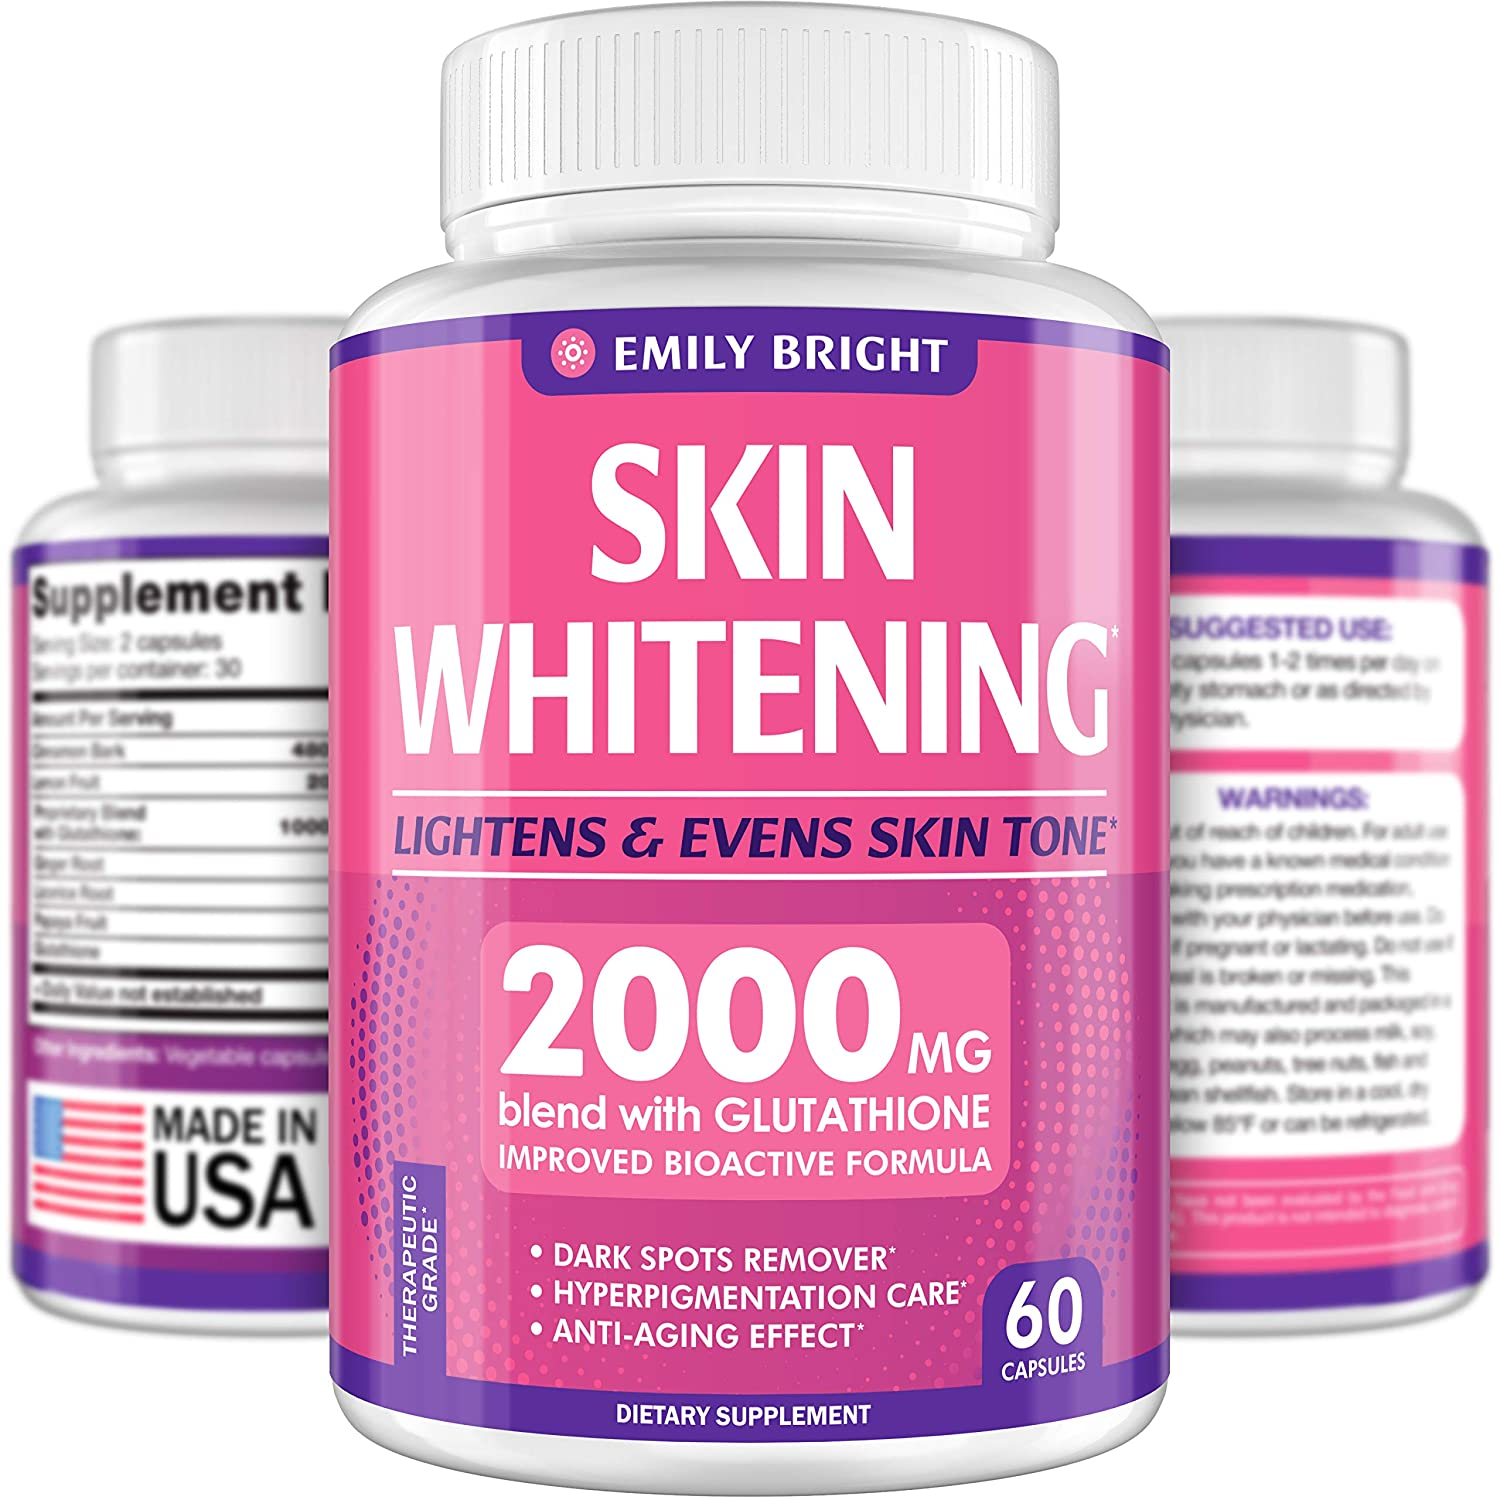 Body Whitening Supplement Recommended For Teenagers?